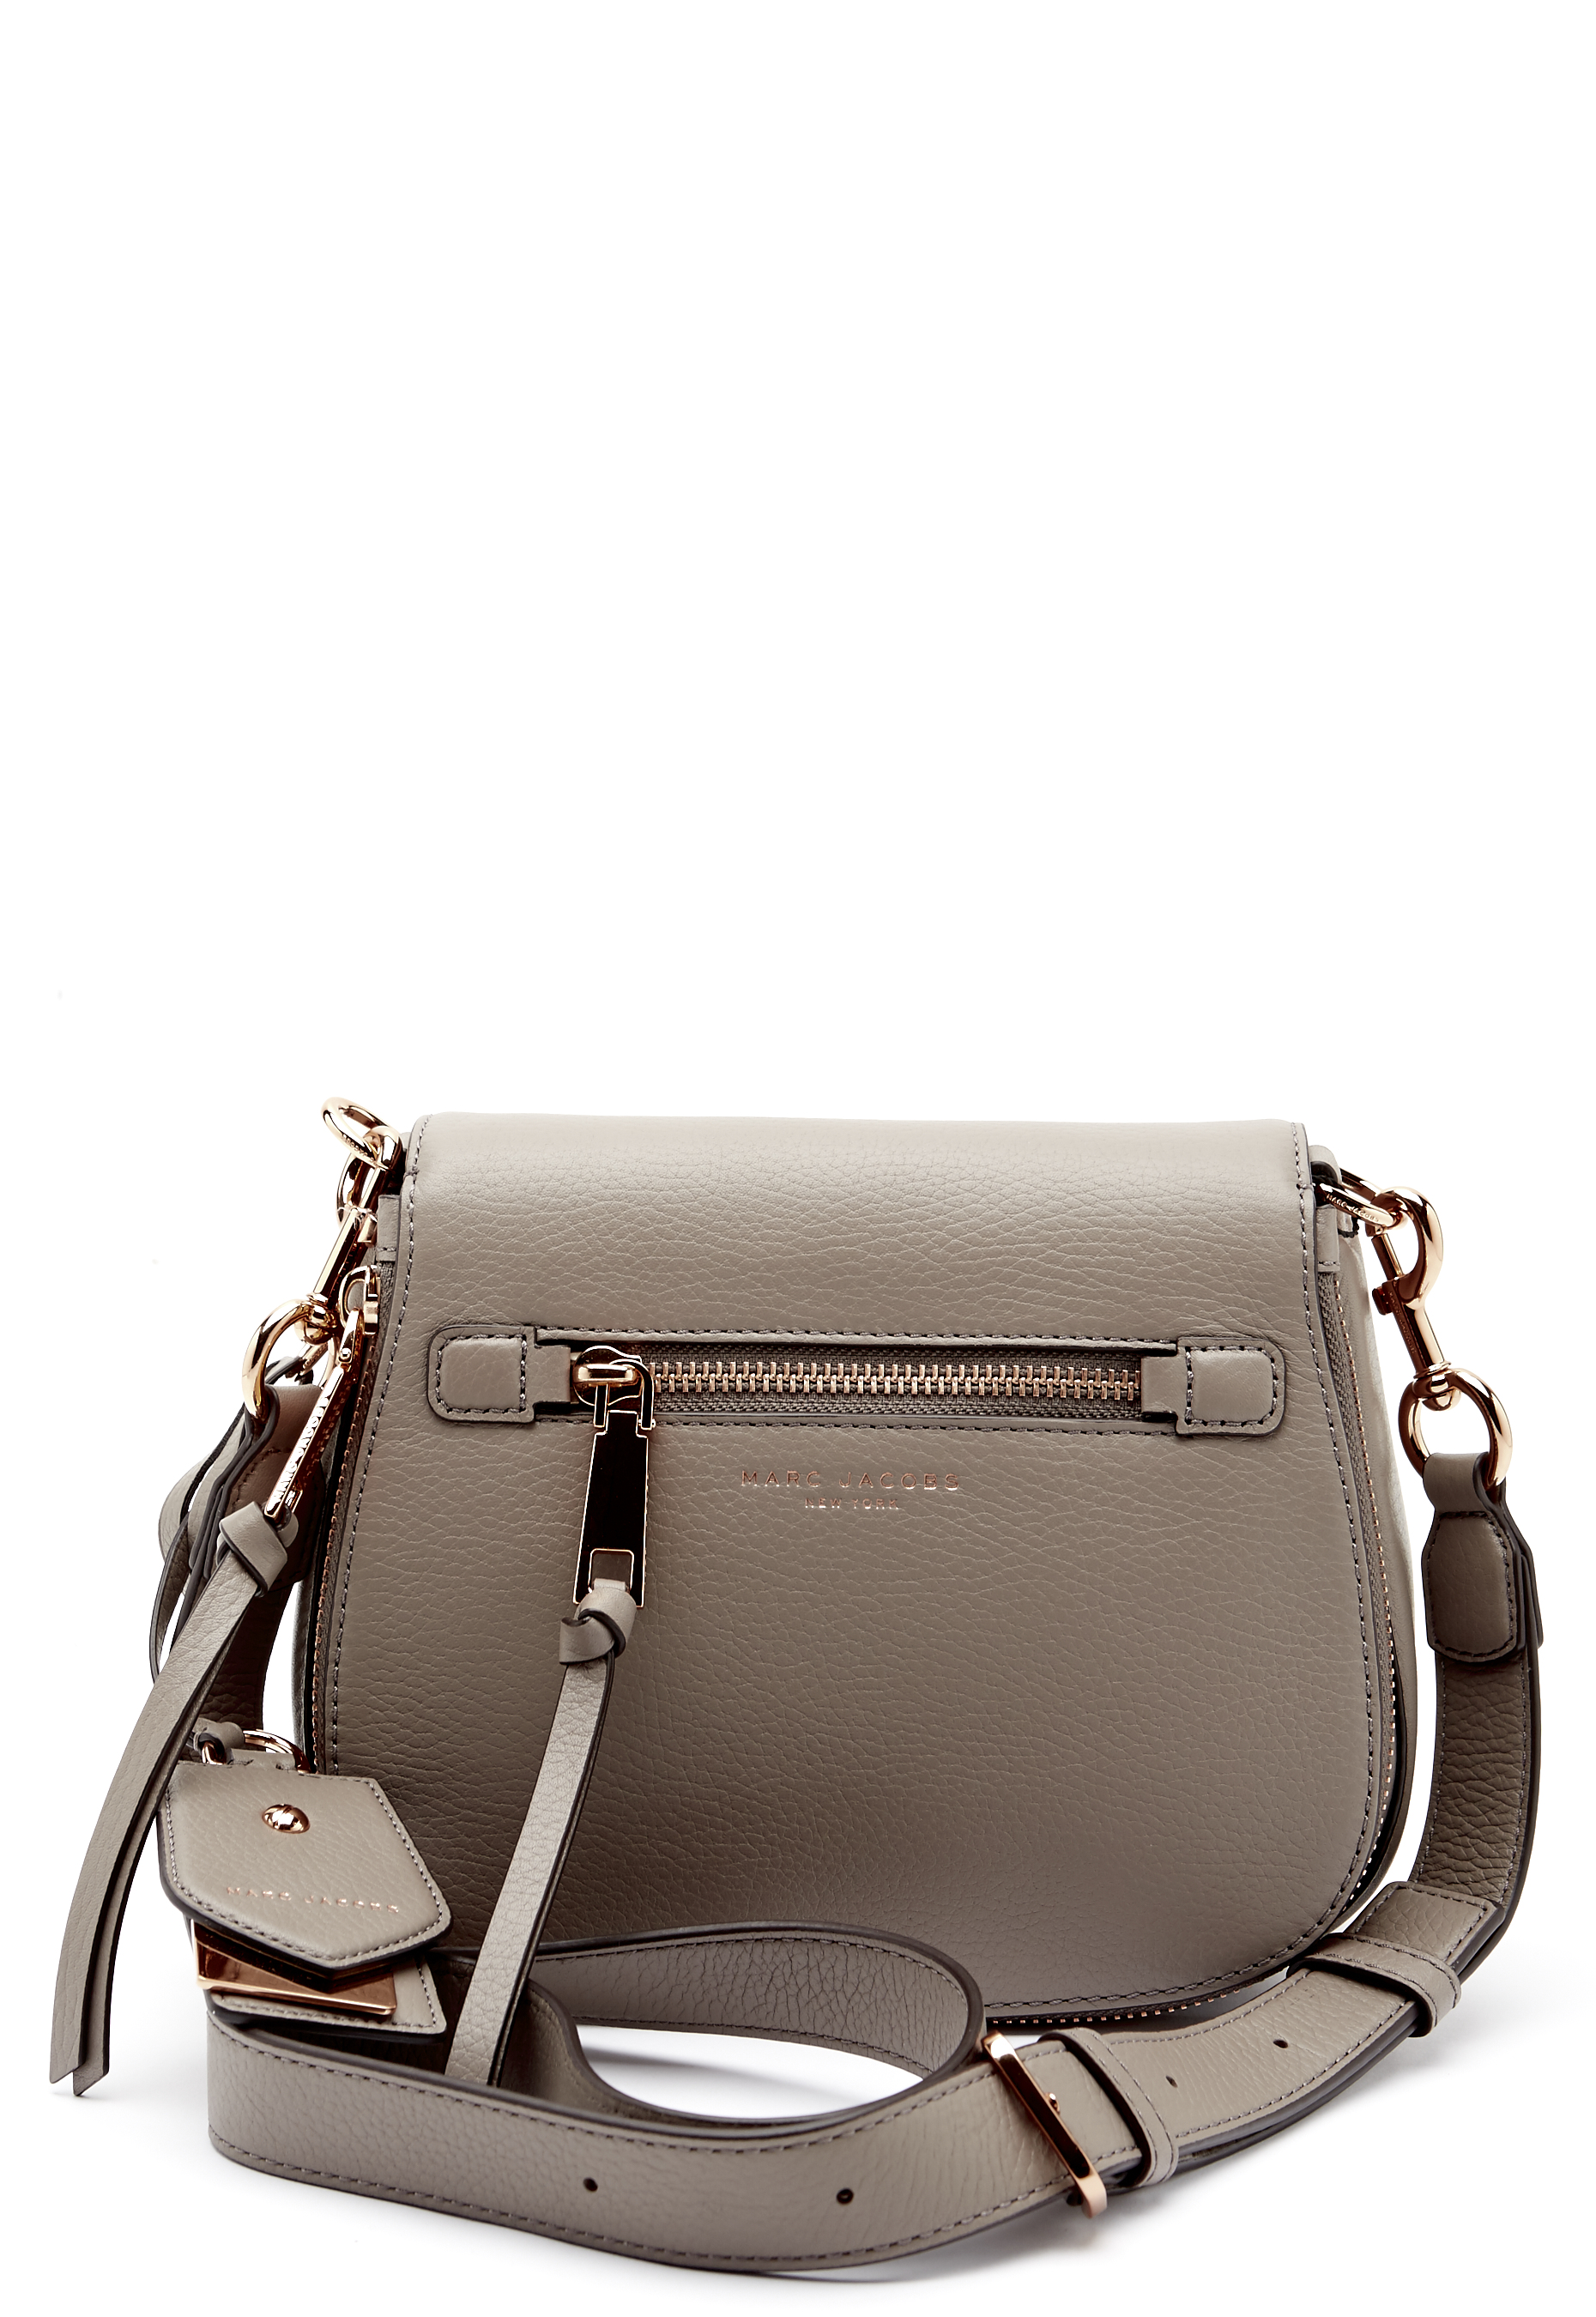 The Marc Jacobs Small Nomad Crossbody Bag Mink Bubbleroom